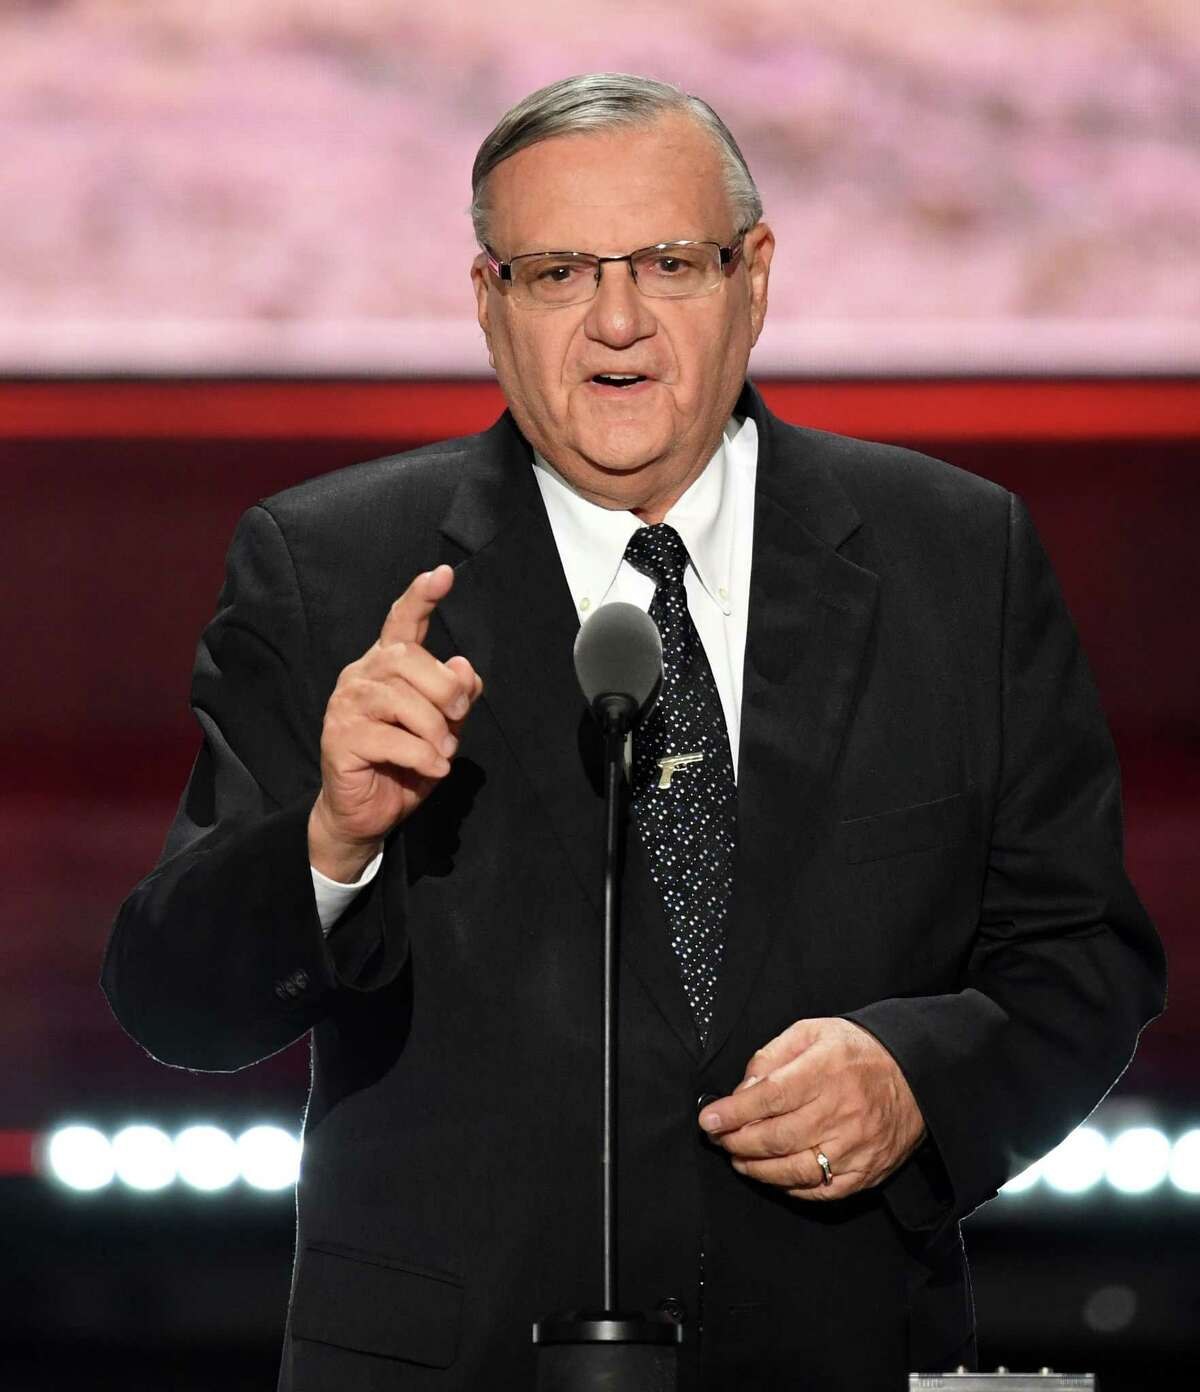 (FILES) This file photo taken on July 21, 2016 shows Sheriff Joe Arpaio speaking on the last day of the Republican National Convention in Cleveland, Ohio. In a statement released by the White House on August 25, 2017, US President Donald Trump granted a Presidential pardon to Arpaio, former Sheriff of Maricopa County, Arizona. Arpaio, 85, was convicted of criminal contempt of court charges for violating an order that he refrain from detaining illegal immigrants, which the courts said was the job of federal authorities. / AFP PHOTO / Robyn BECKROBYN BECK/AFP/Getty Images